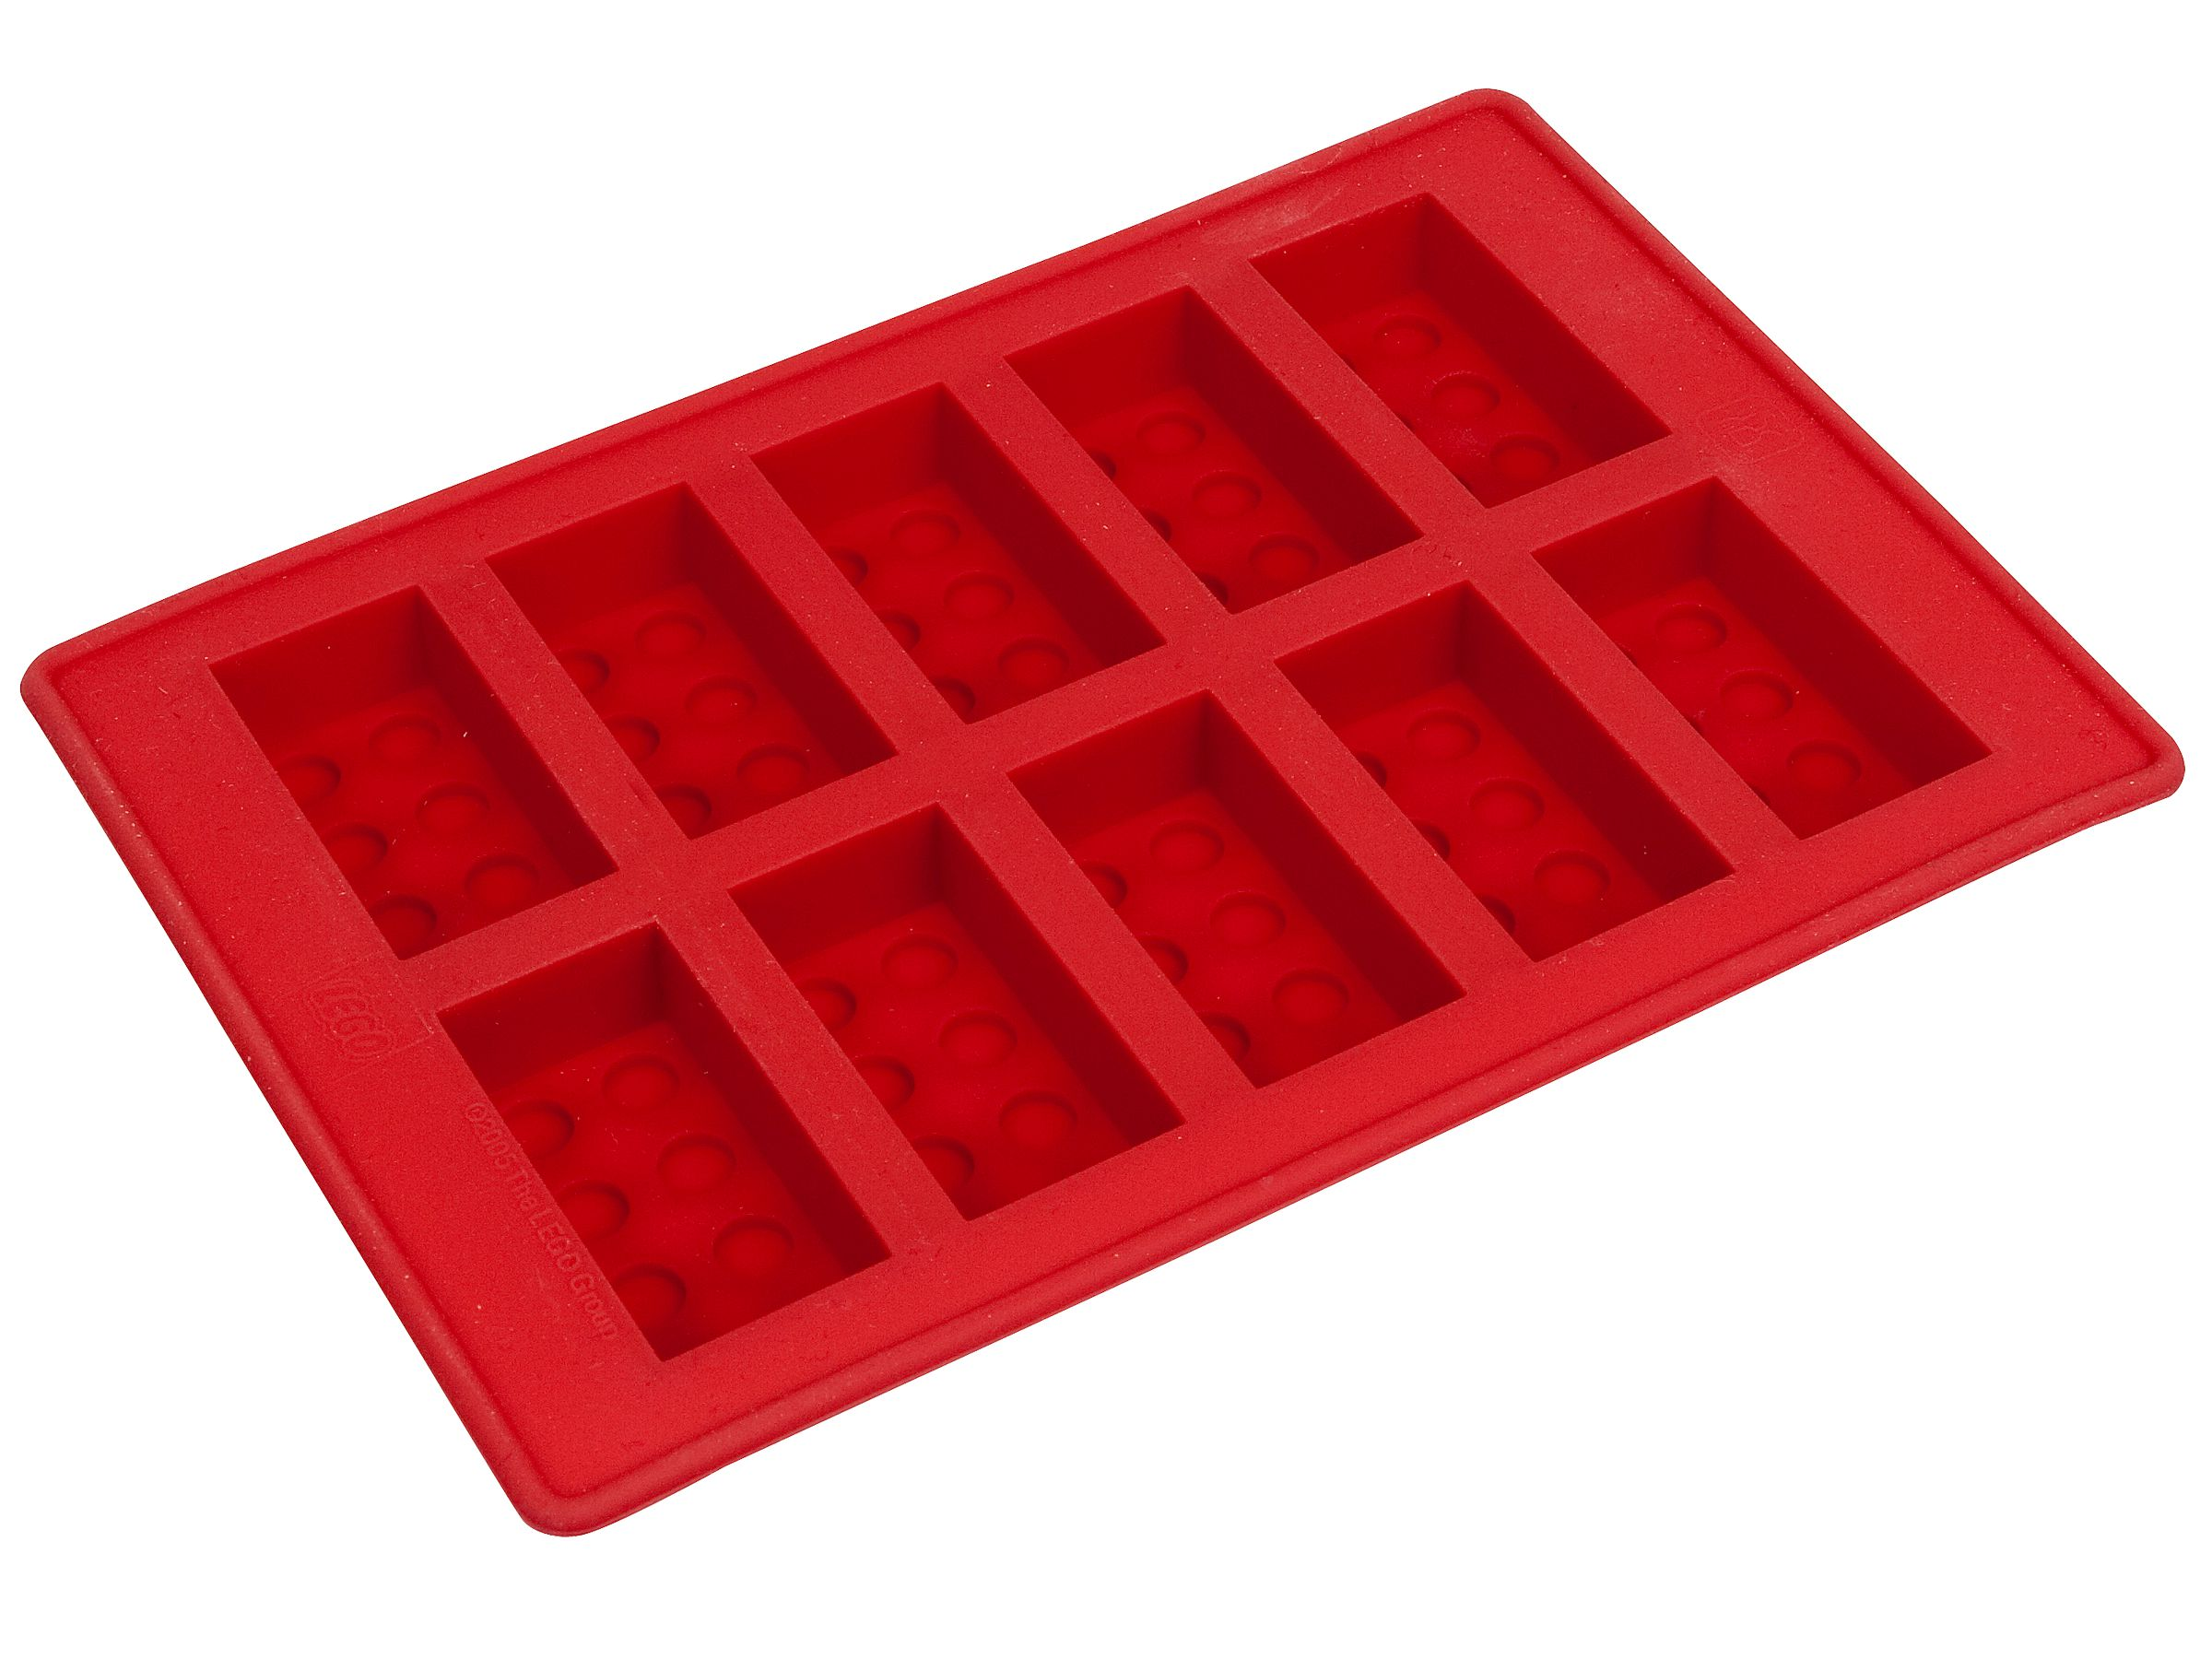 LEGO Gear 852768 LEGO Ice Brick Tray Red LEGO_852768.jpg